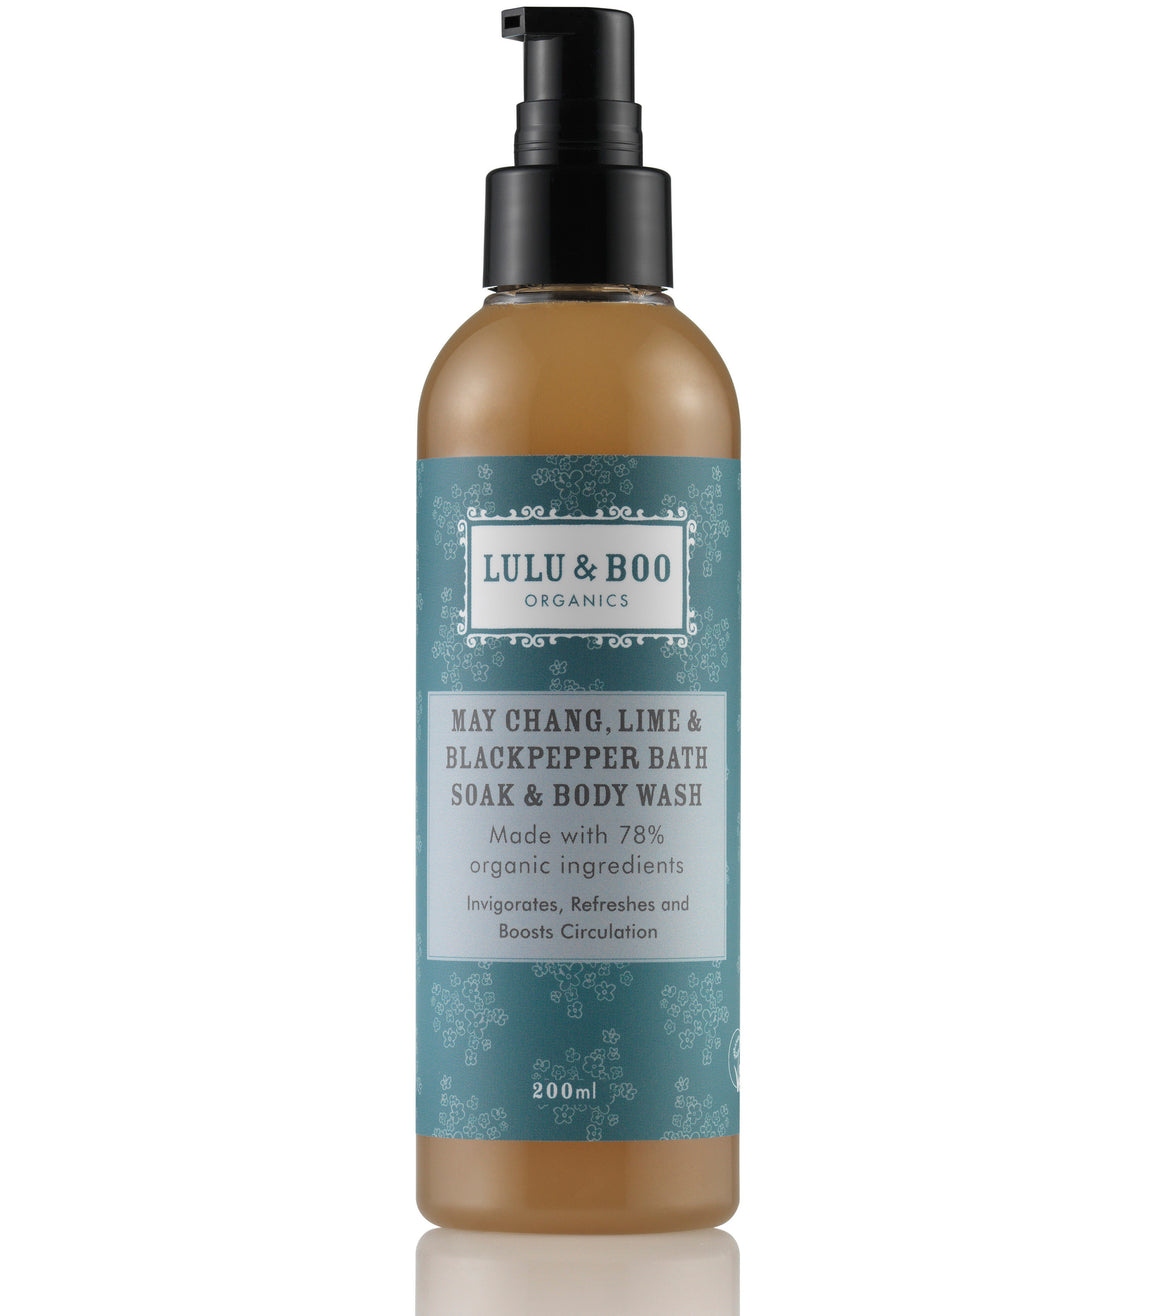 May Chang, Lime & Blackpepper Bath Soak & Body Wash - Lulu & Boo Organics